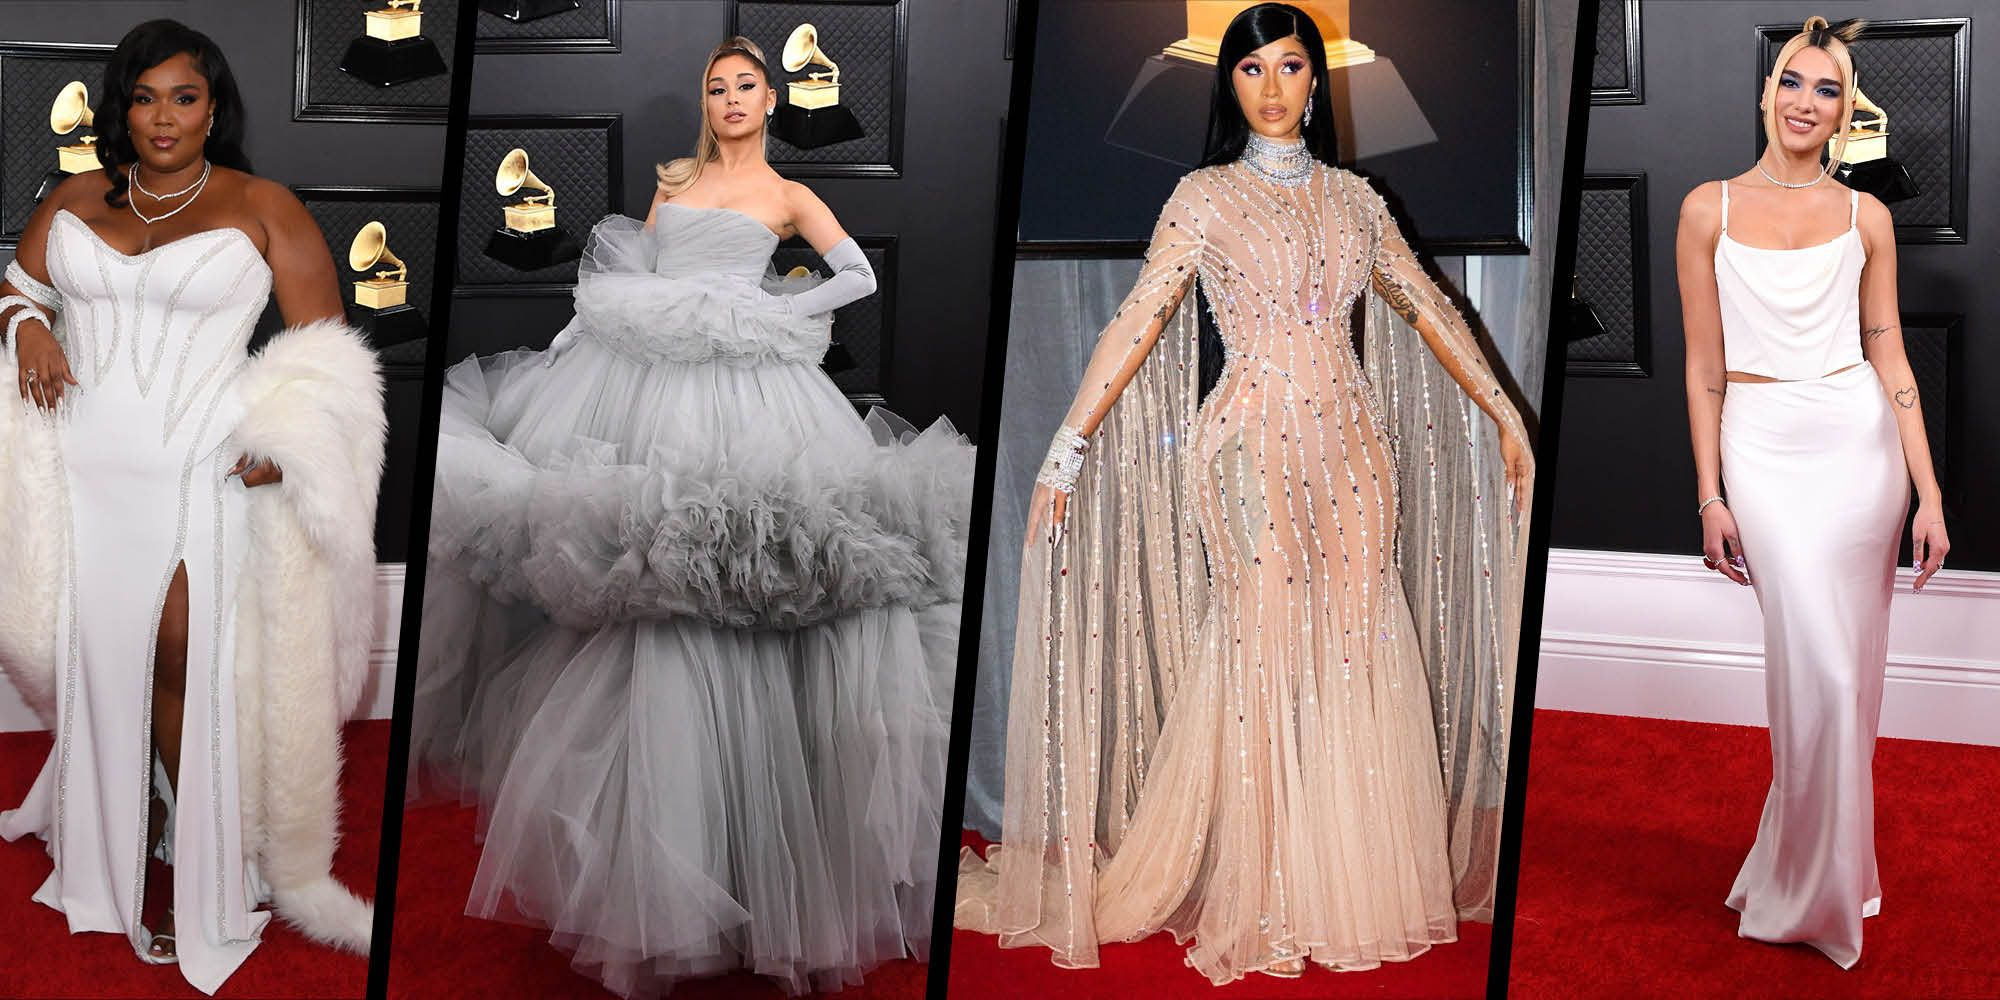 10 of the most talked-about looks from the 2020 Grammys